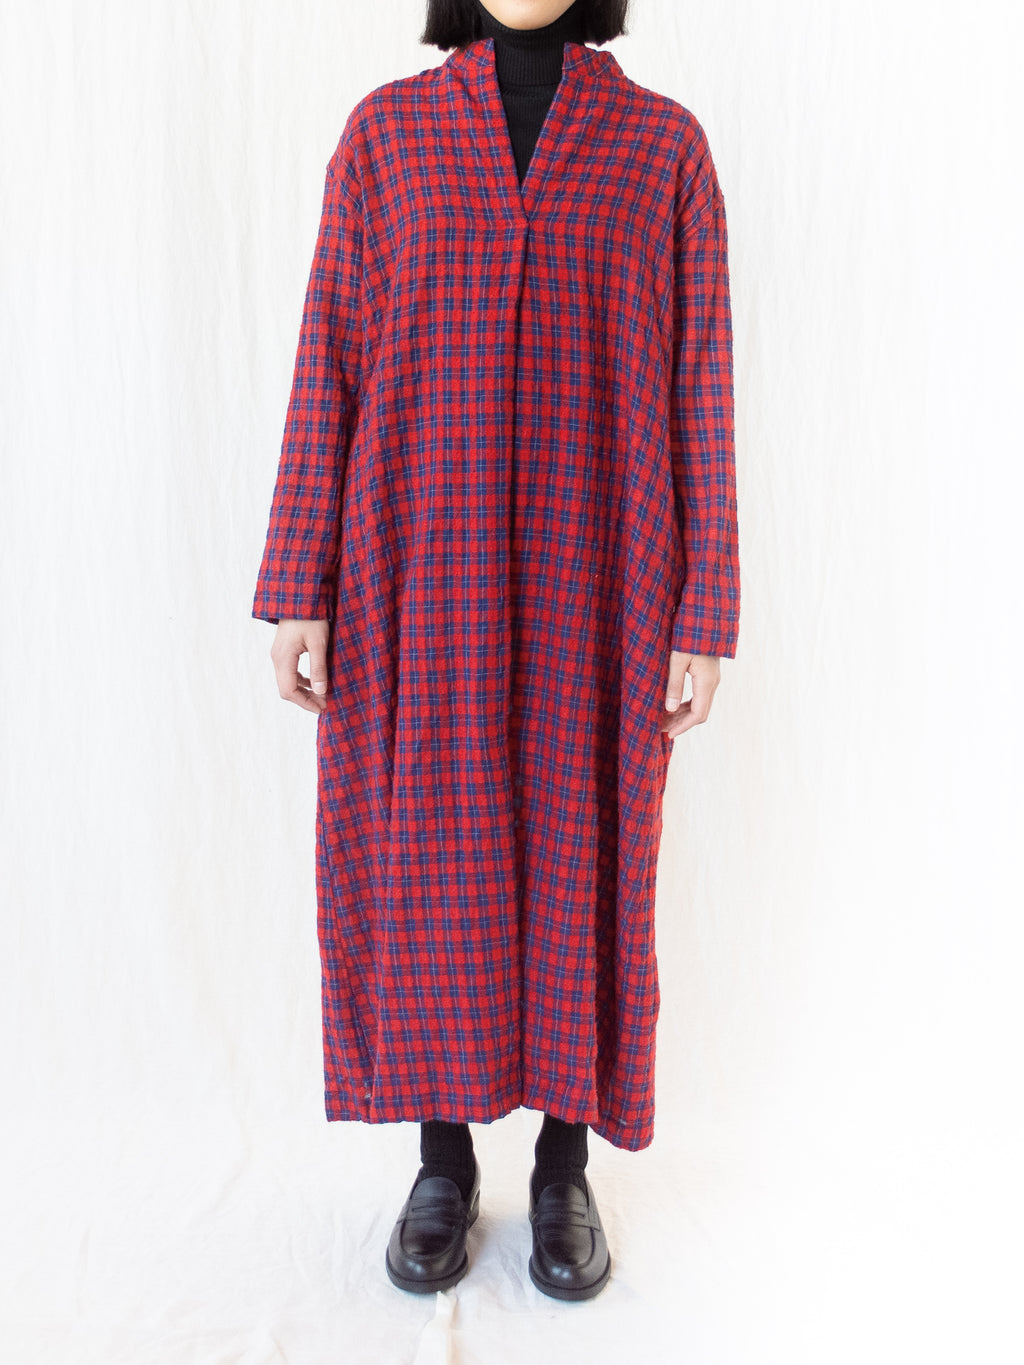 Wool Gauze Check Dress - Red